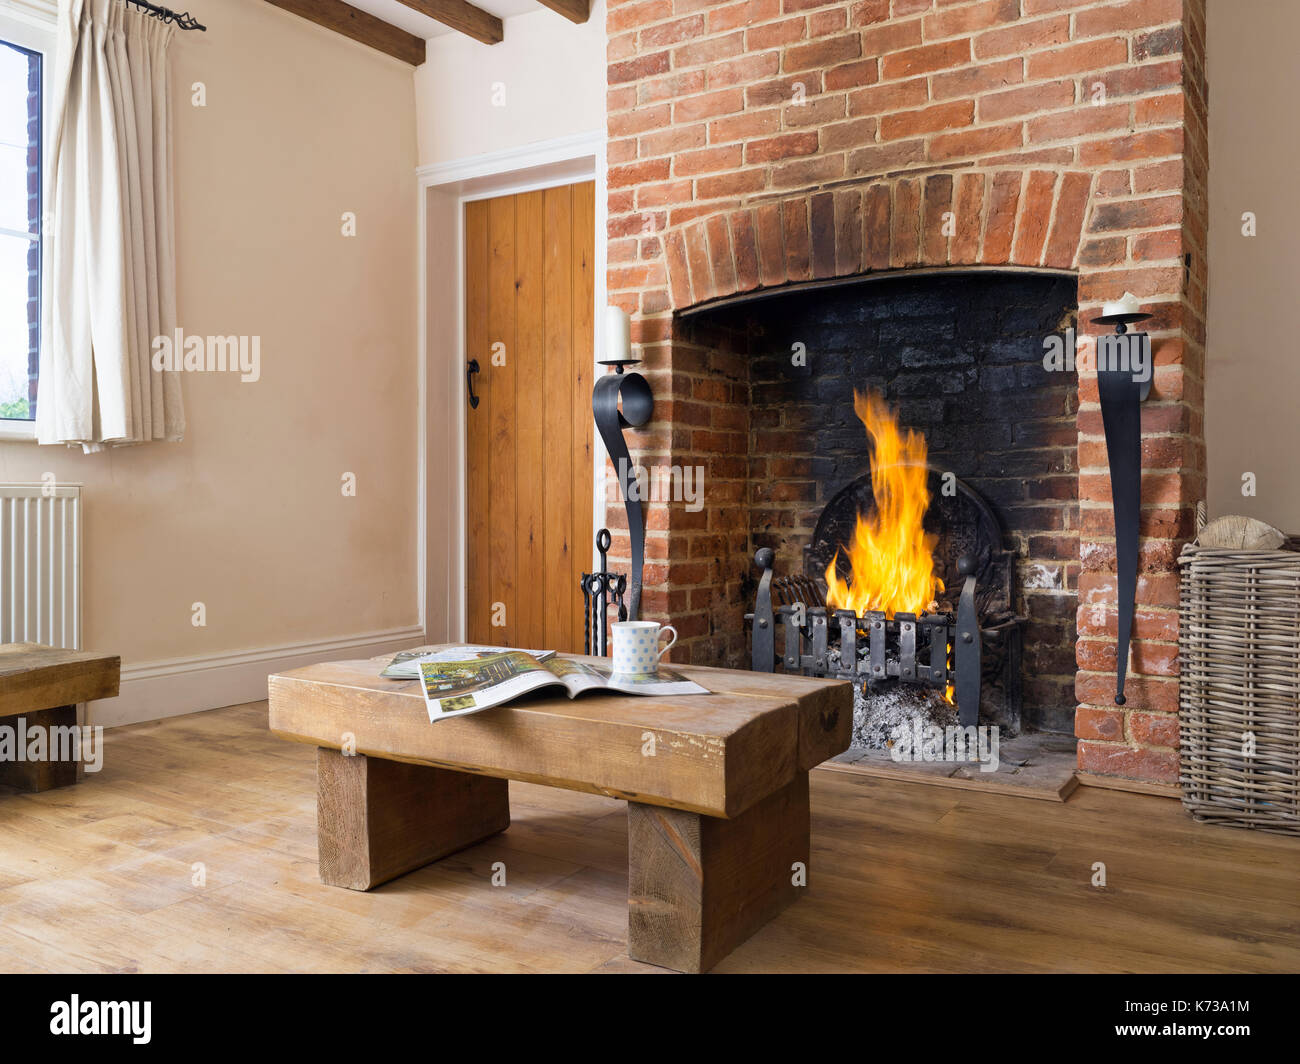 Genial A Blazing Fire In A Red Brick Fireplace In The Living Room Of A Country  Cottage With Chunky Rustic Furniture